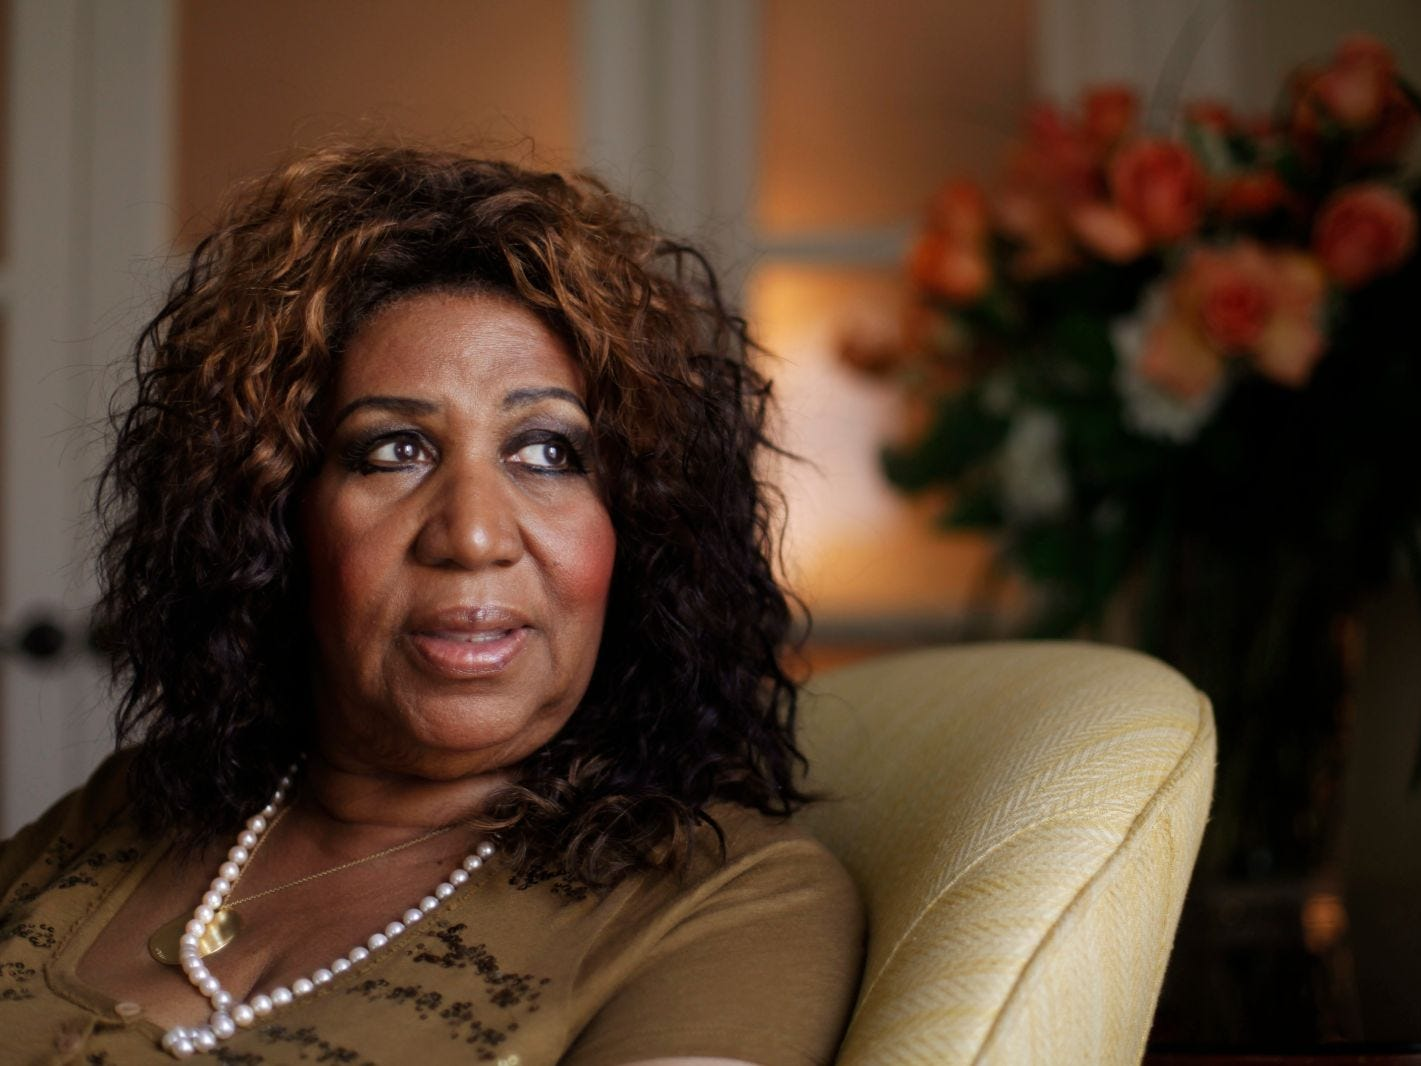 In this July 26, 2010 photo, performer Aretha Franklin looks out a window, in Philadelphia. Franklin says she believed Whitney Houston had overcome her demons and was primed for a comeback, which made learning of the troubled singer's death all the more of a shock. Interviewed on NBC's Today show Friday, Feb. 17, 2012, Franklin said she was watching TV in her hotel room in Charlotte, N.C., when she learned of Houston's death.